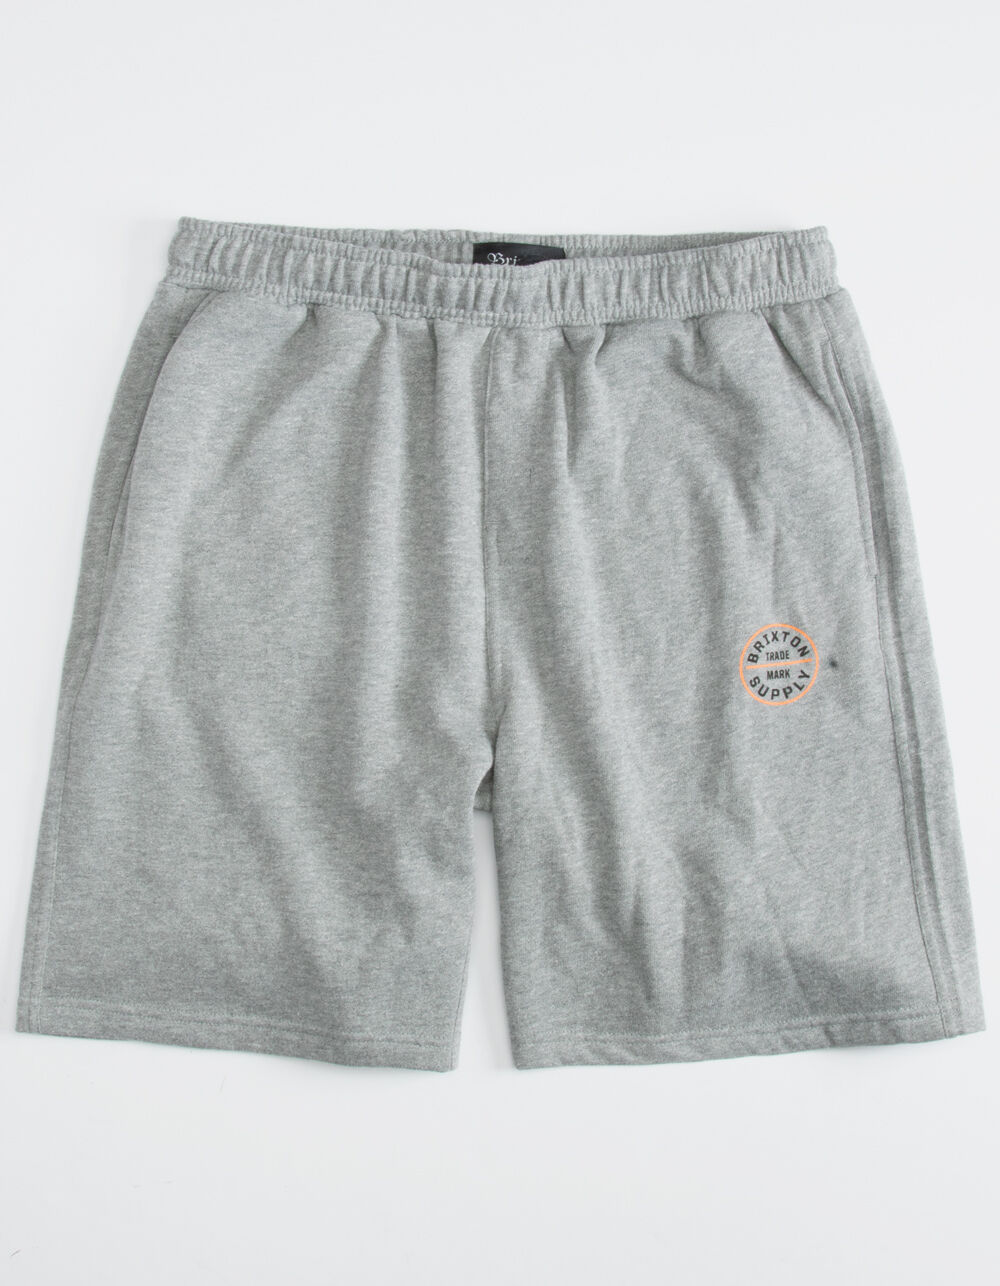 BRIXTON Oath Heather Gray Sweat Shorts